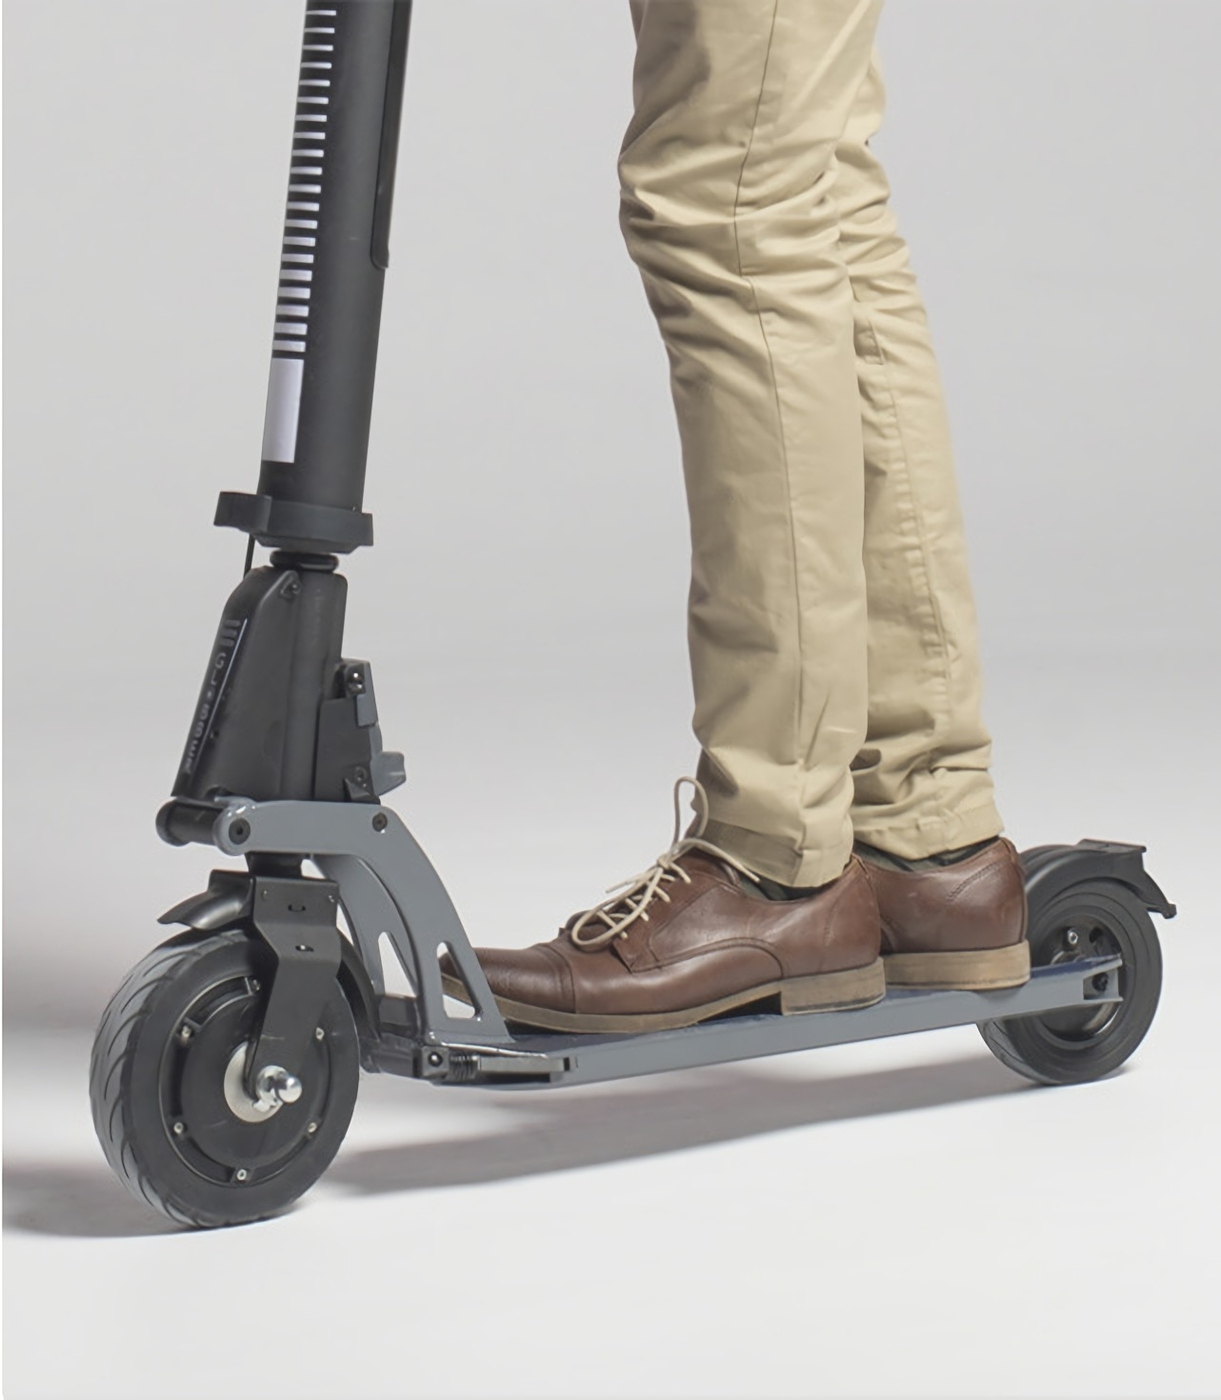 the smoothest experience - E-scooter